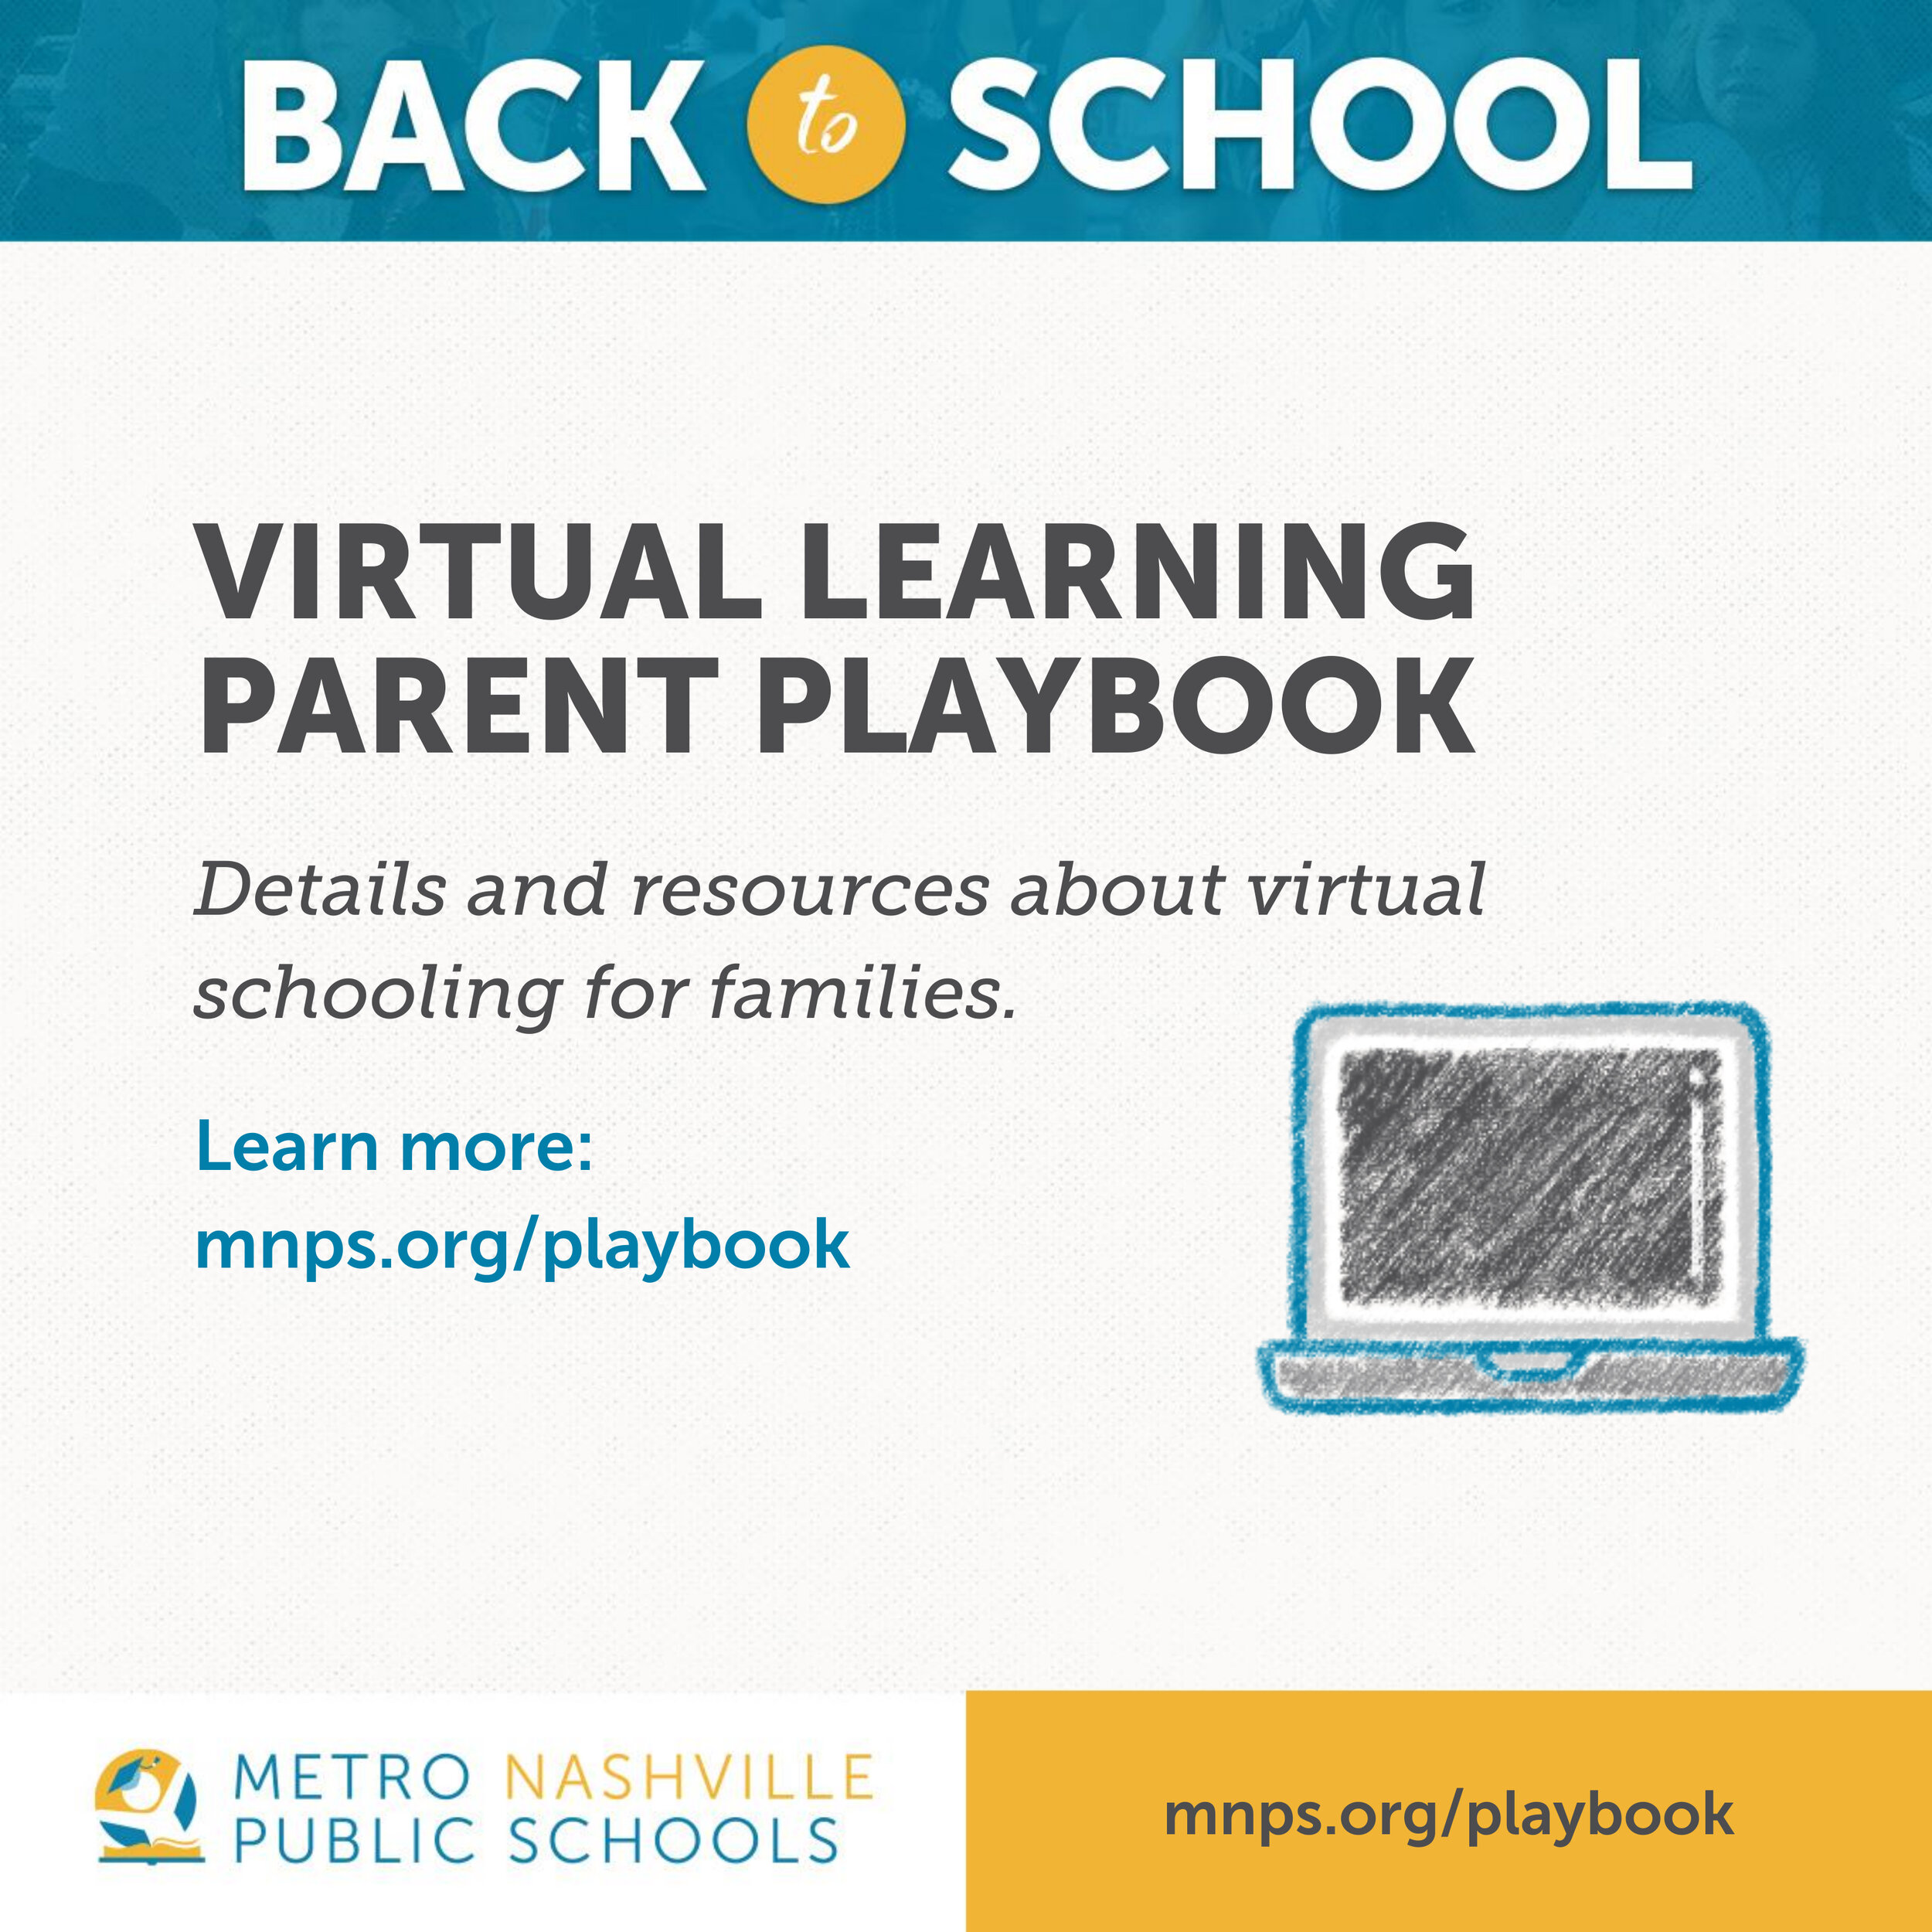 virtual learning parent playbook